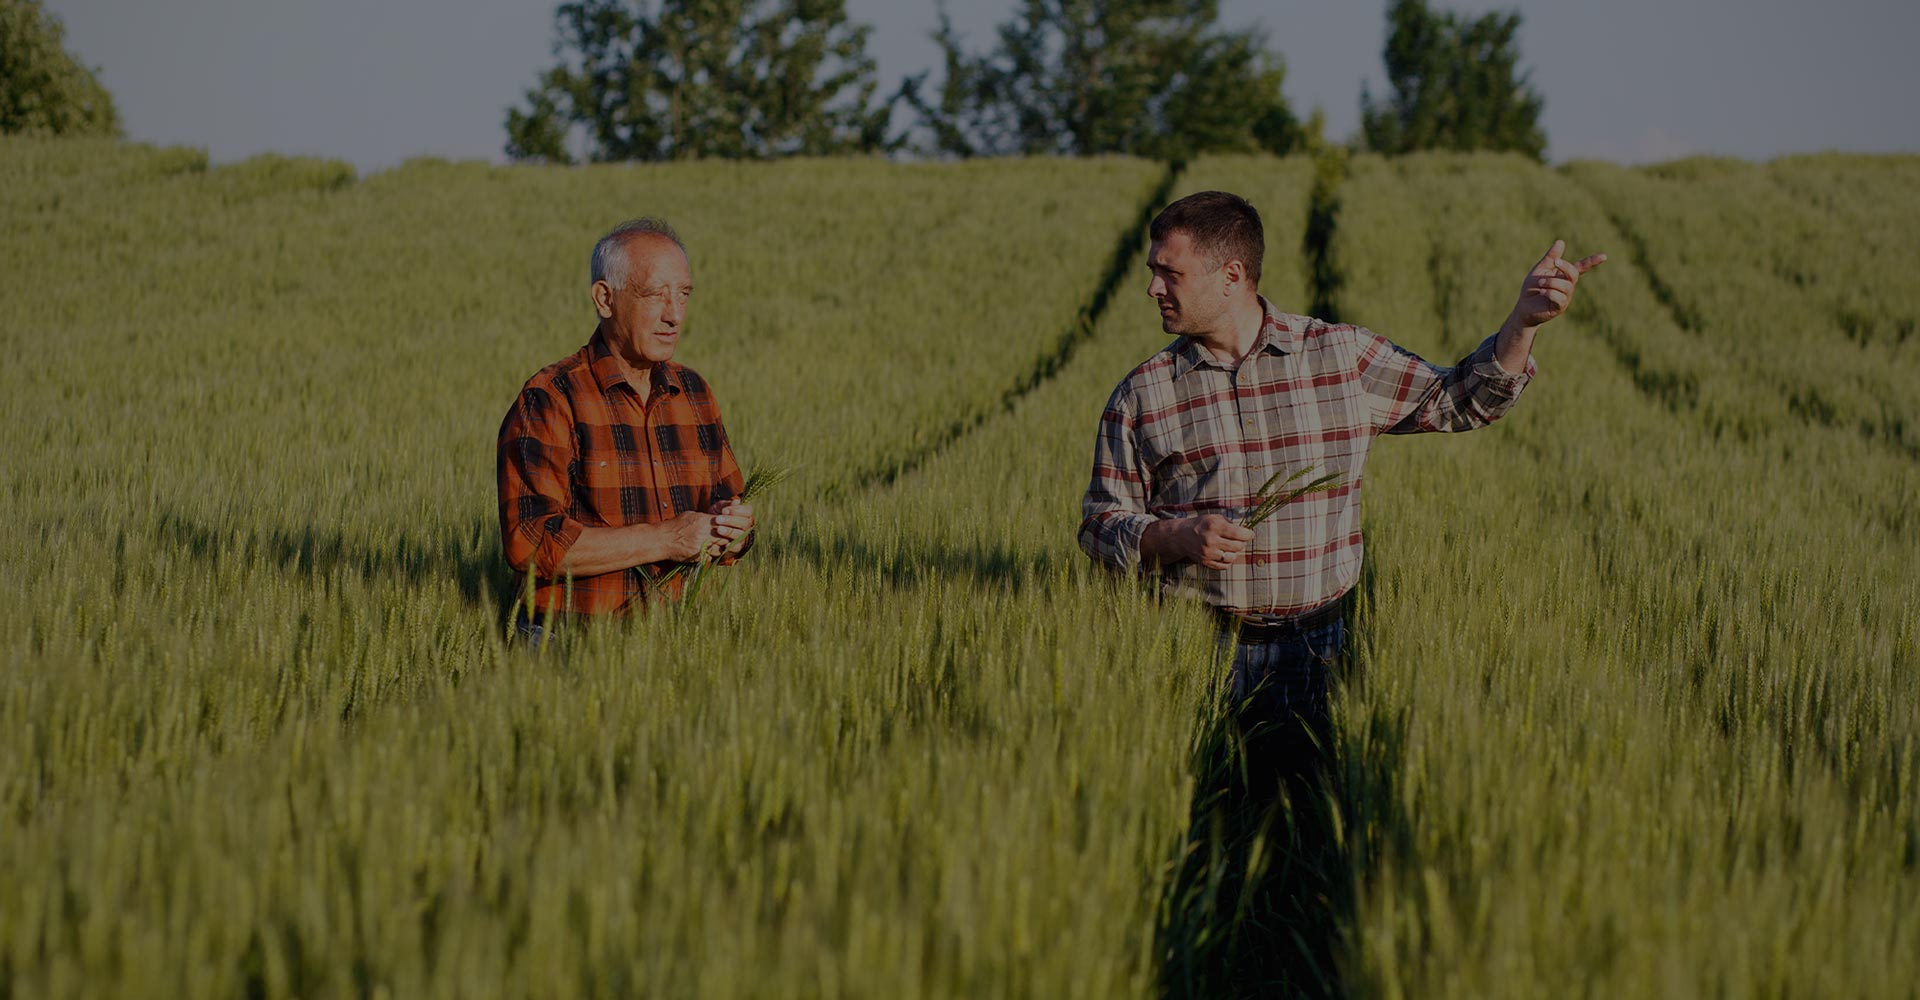 Two farmers in a field examining wheat crop in their hands